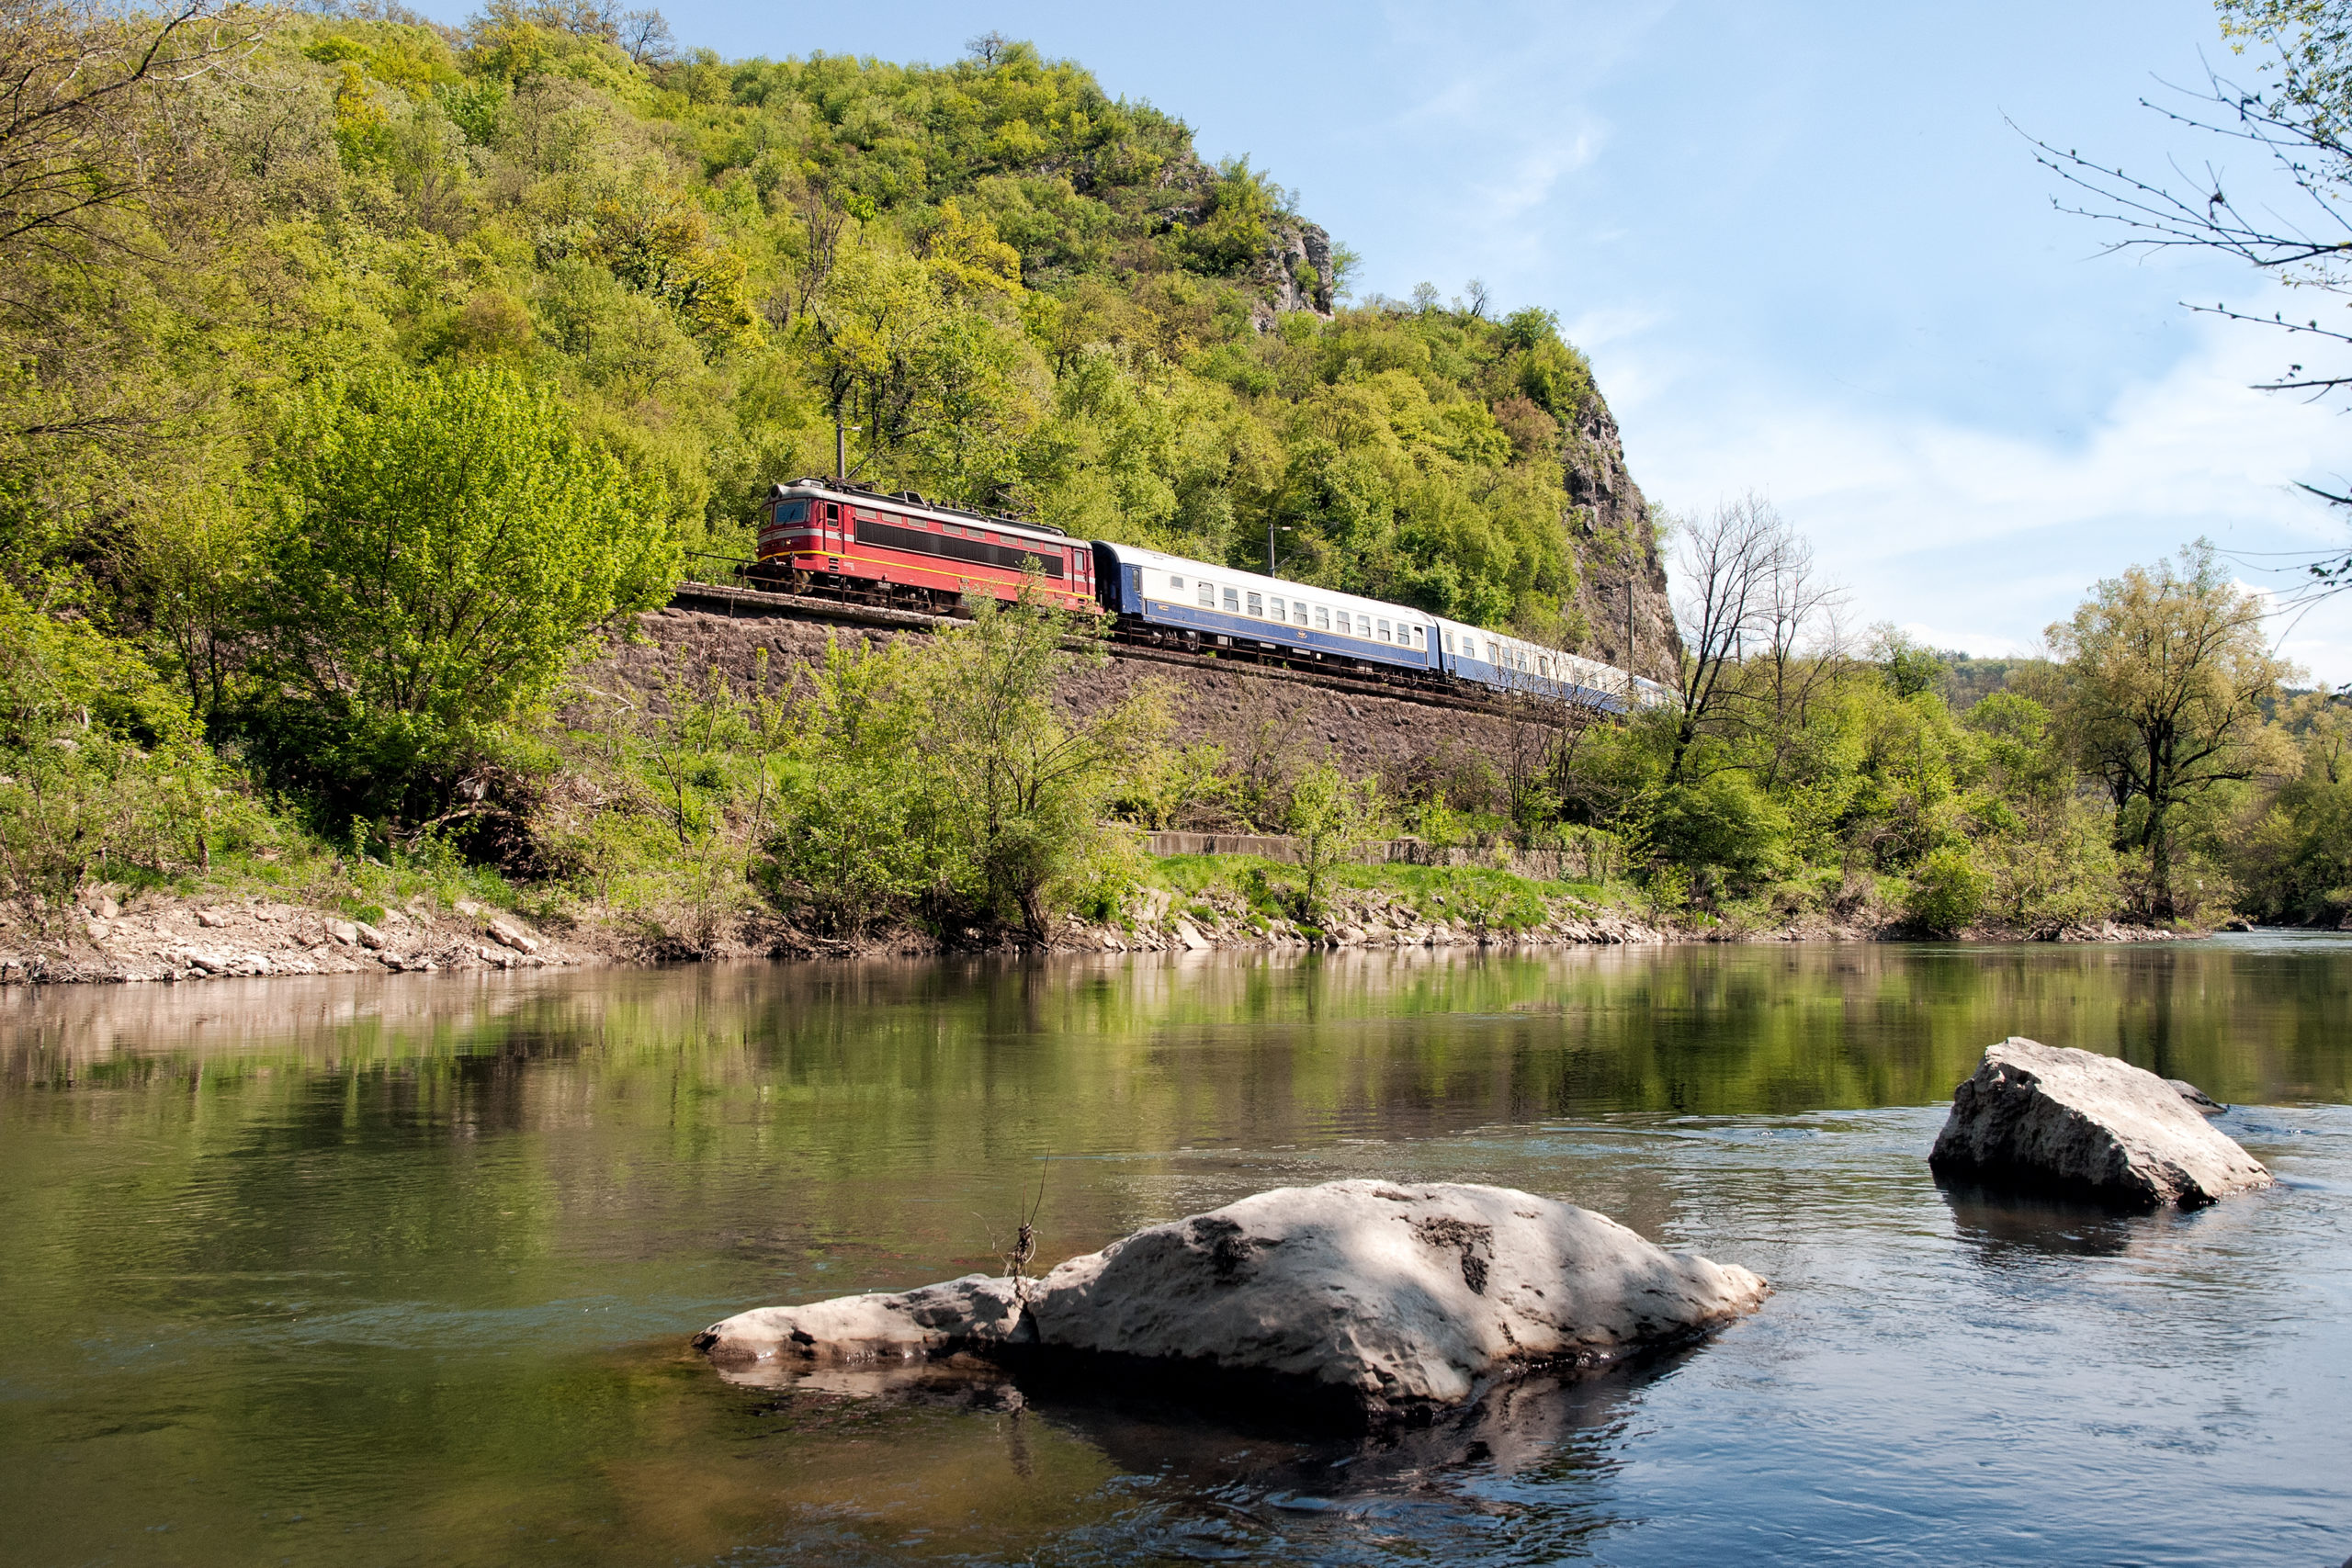 The Golden Eagle Danube Express in Hungary.